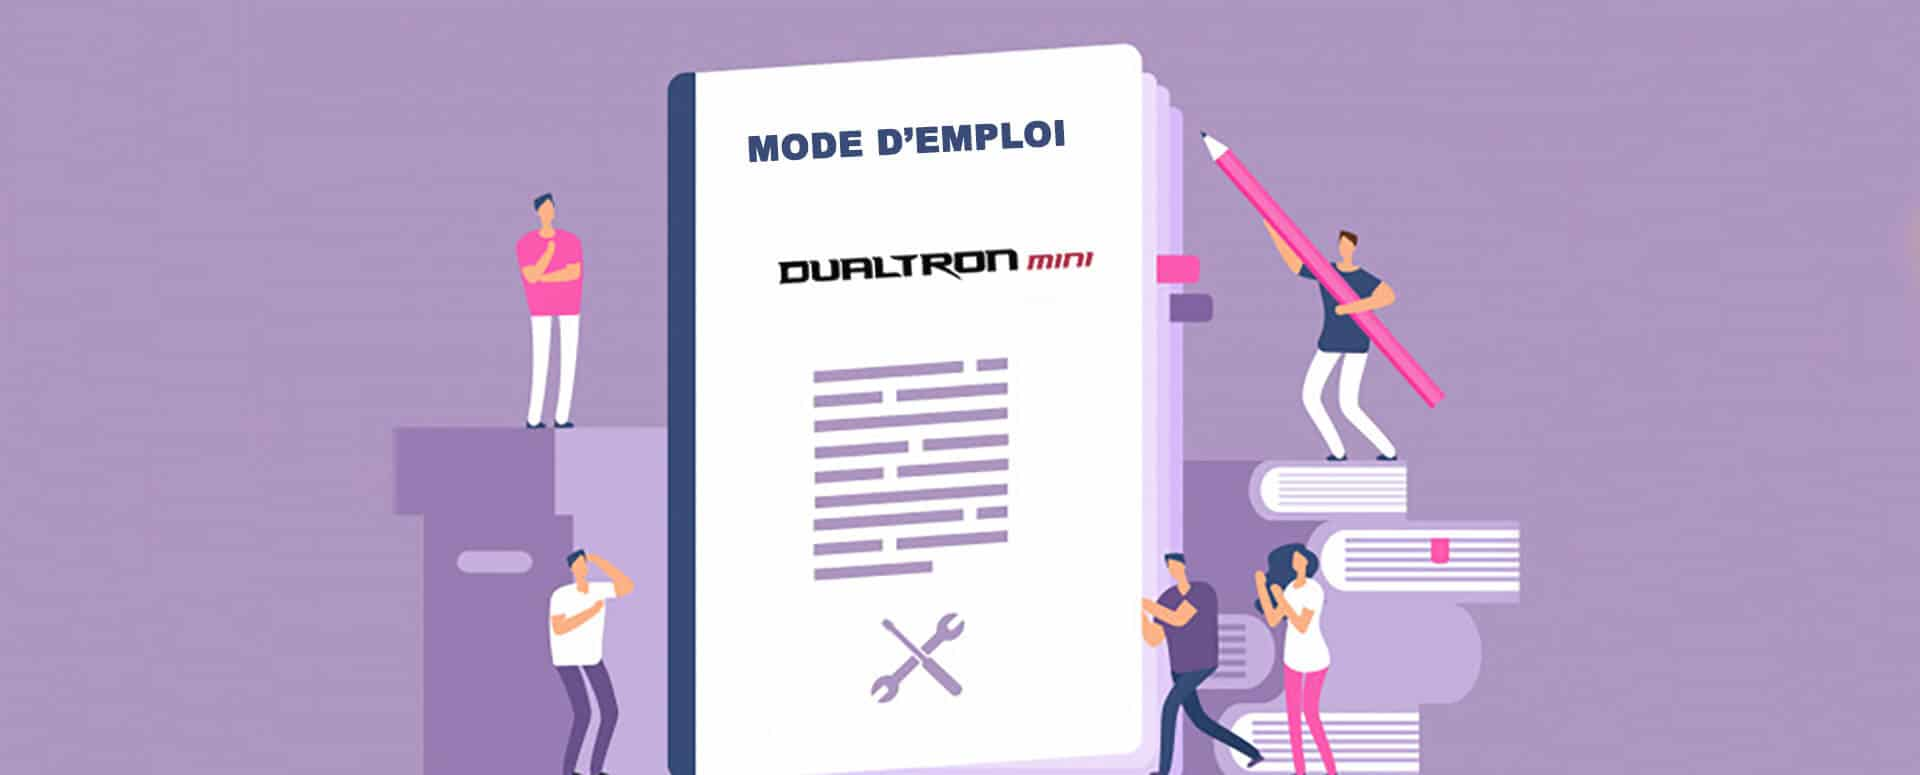 trottinette-mode-emploi-notice dualtron mini manuel